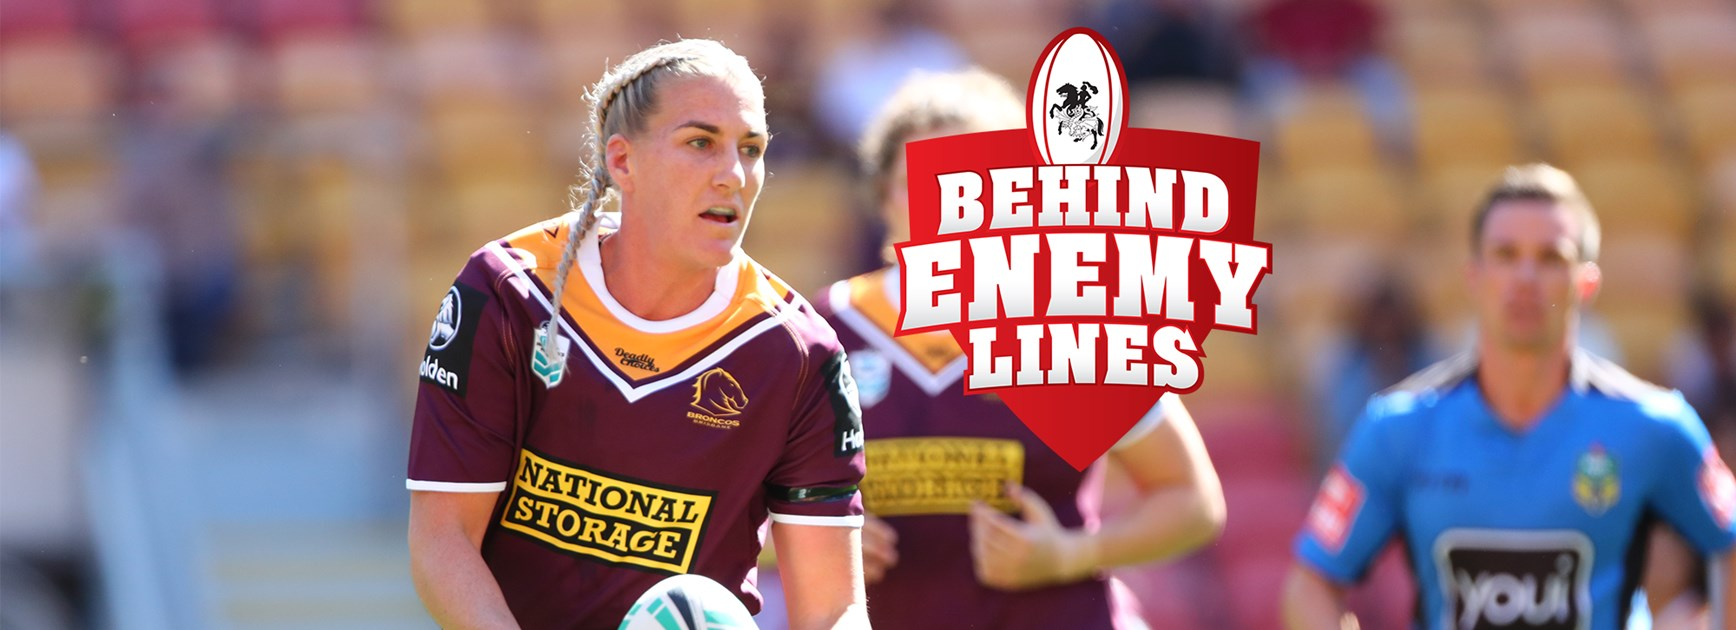 Behind enemy lines: NRLW Round 1